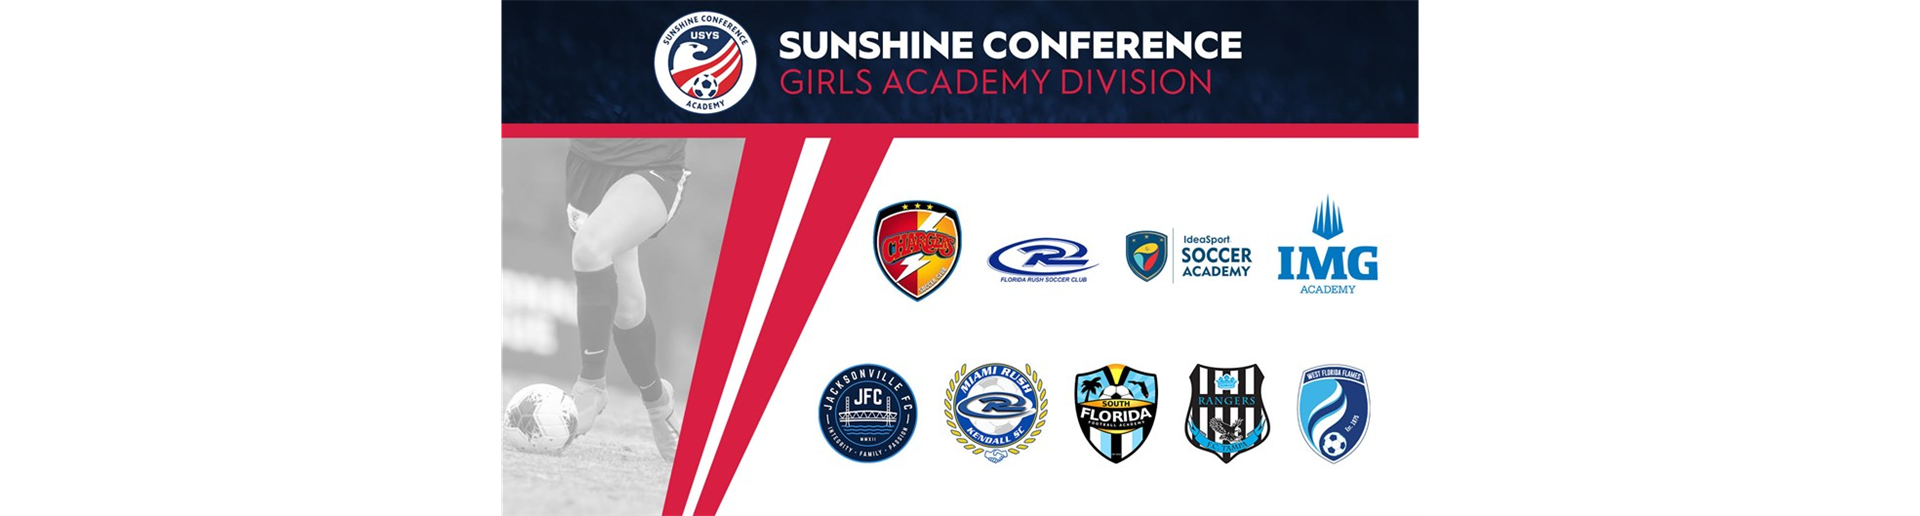 USYS Sunshine Conference Girls Academy Division to debut in 2021-22 season